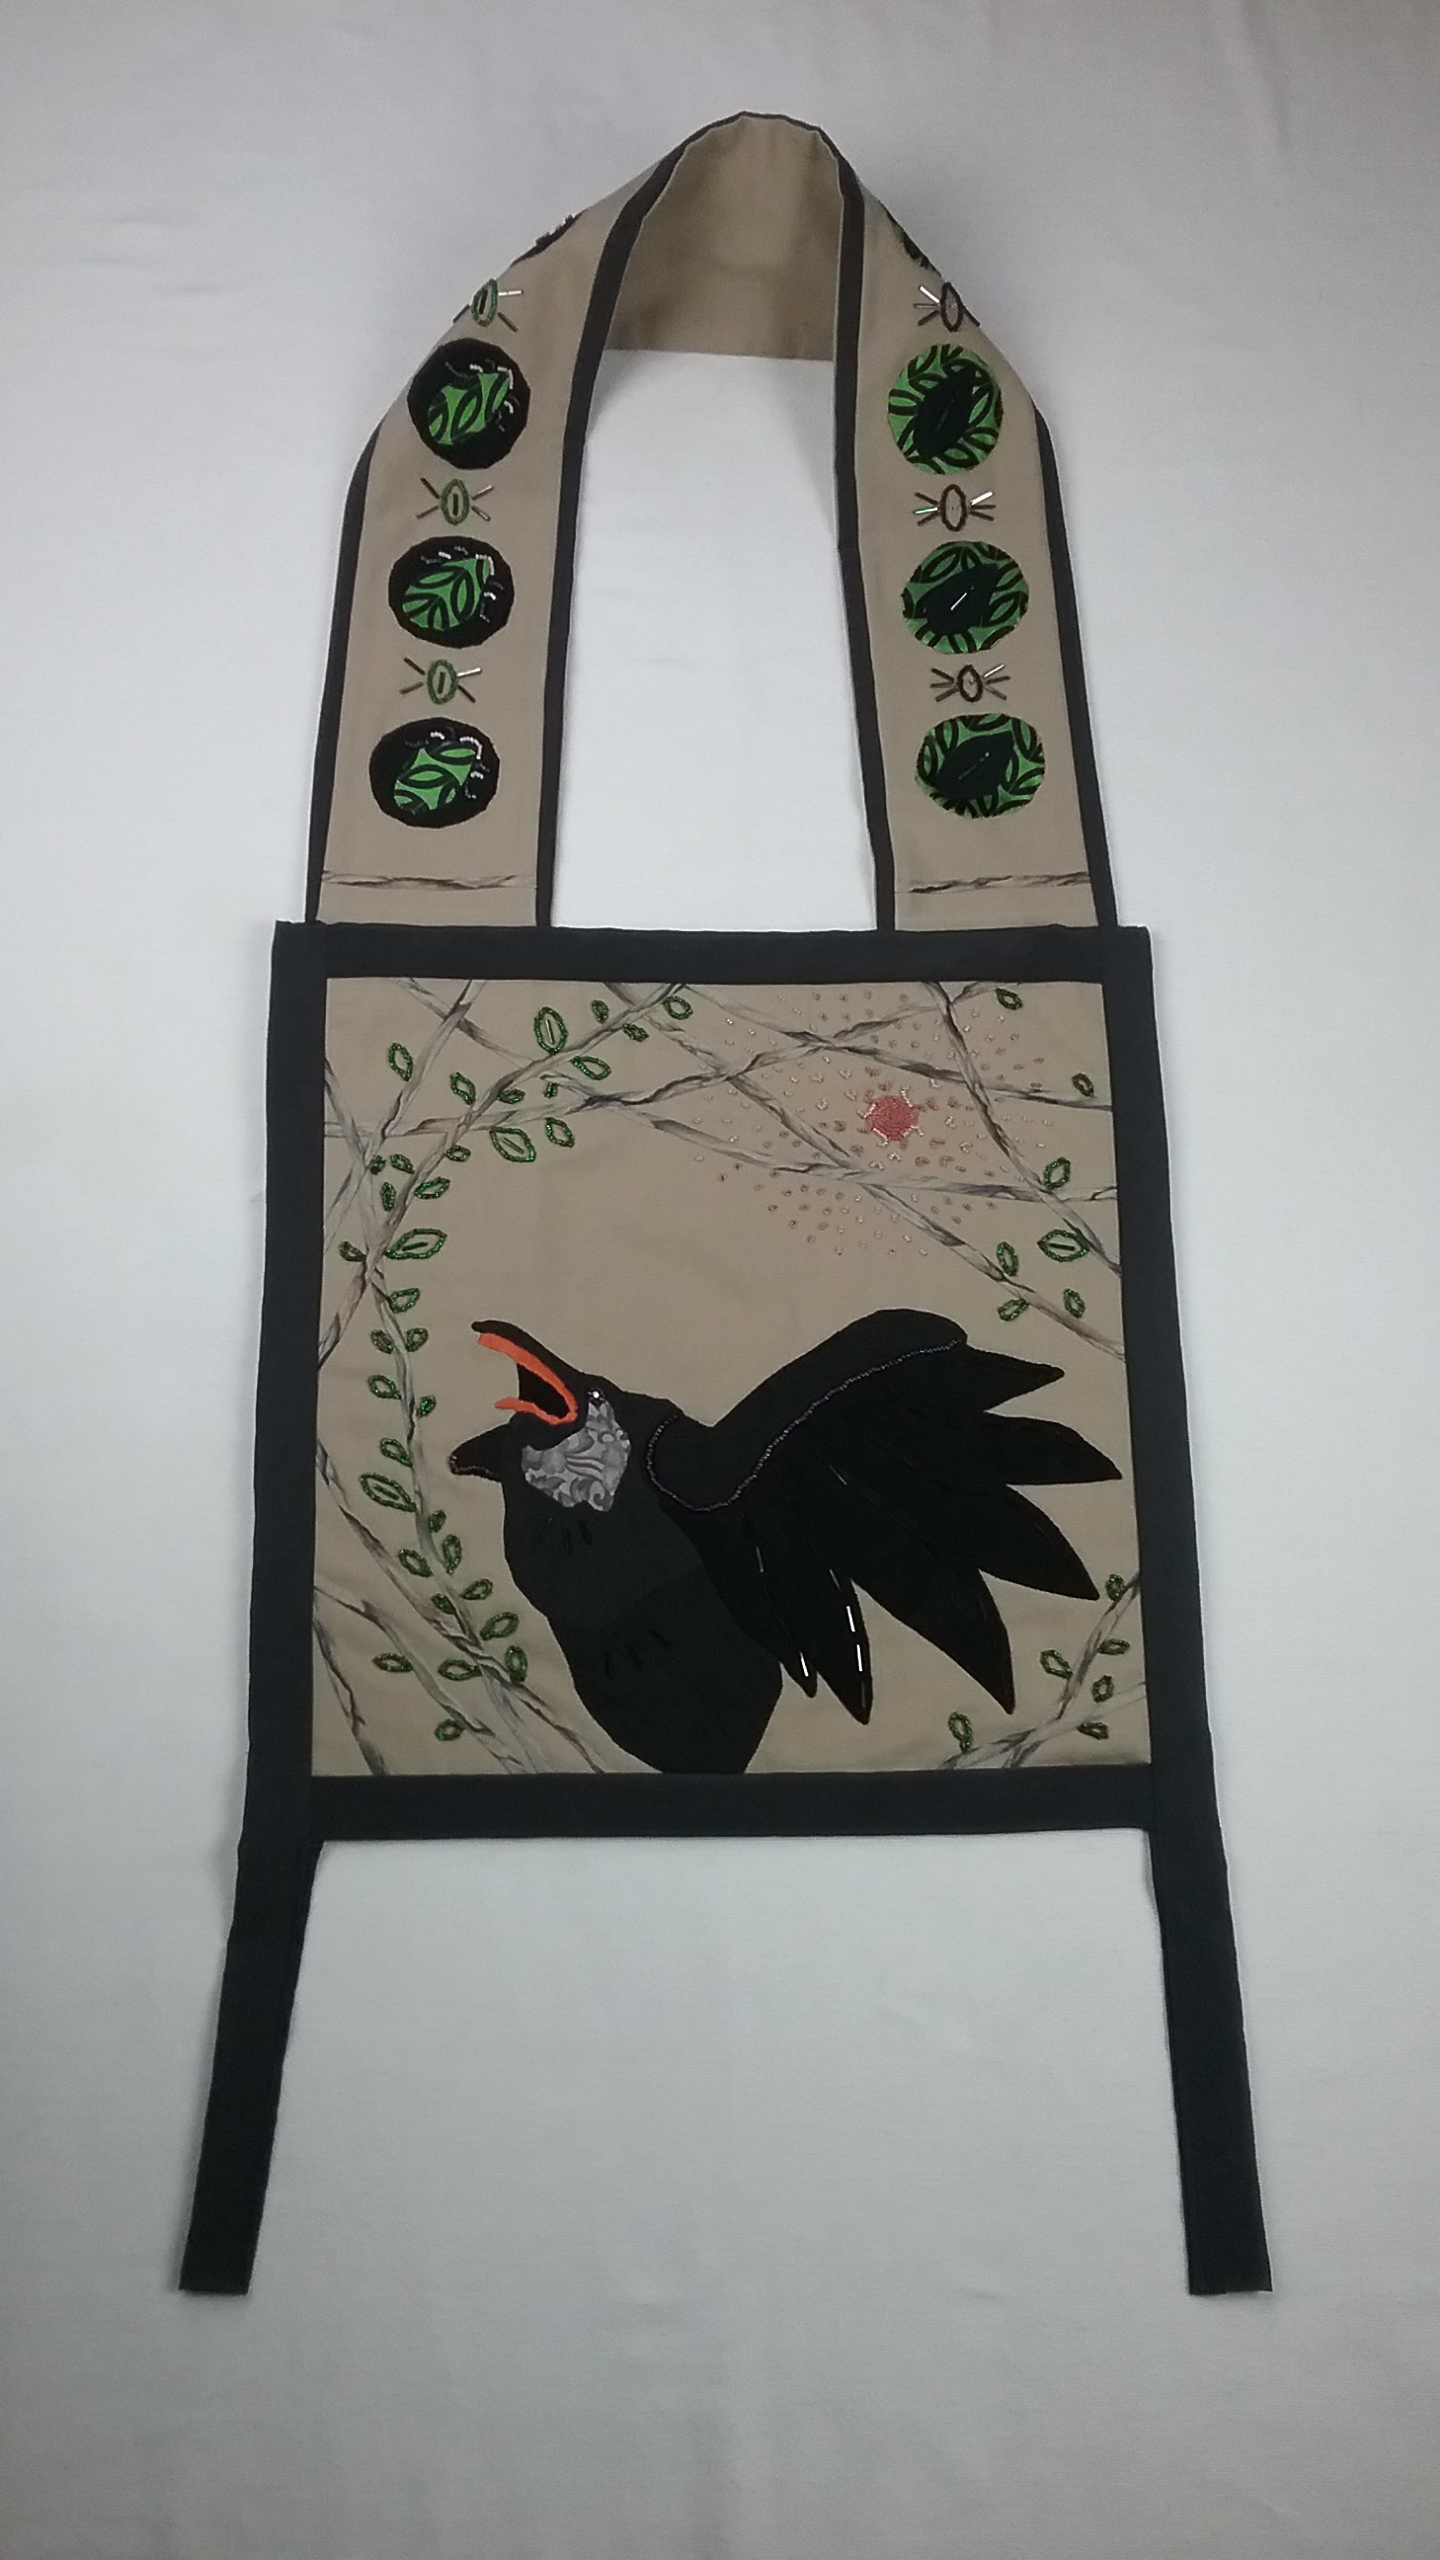 Corvid bag, applique and bead applique, bag structure inspired by Ojibwe bandolier bags, by Mary Warner, 2017. Note, corvids (crows & ravens) do not have orange beaks, so I've used artistic license on this.